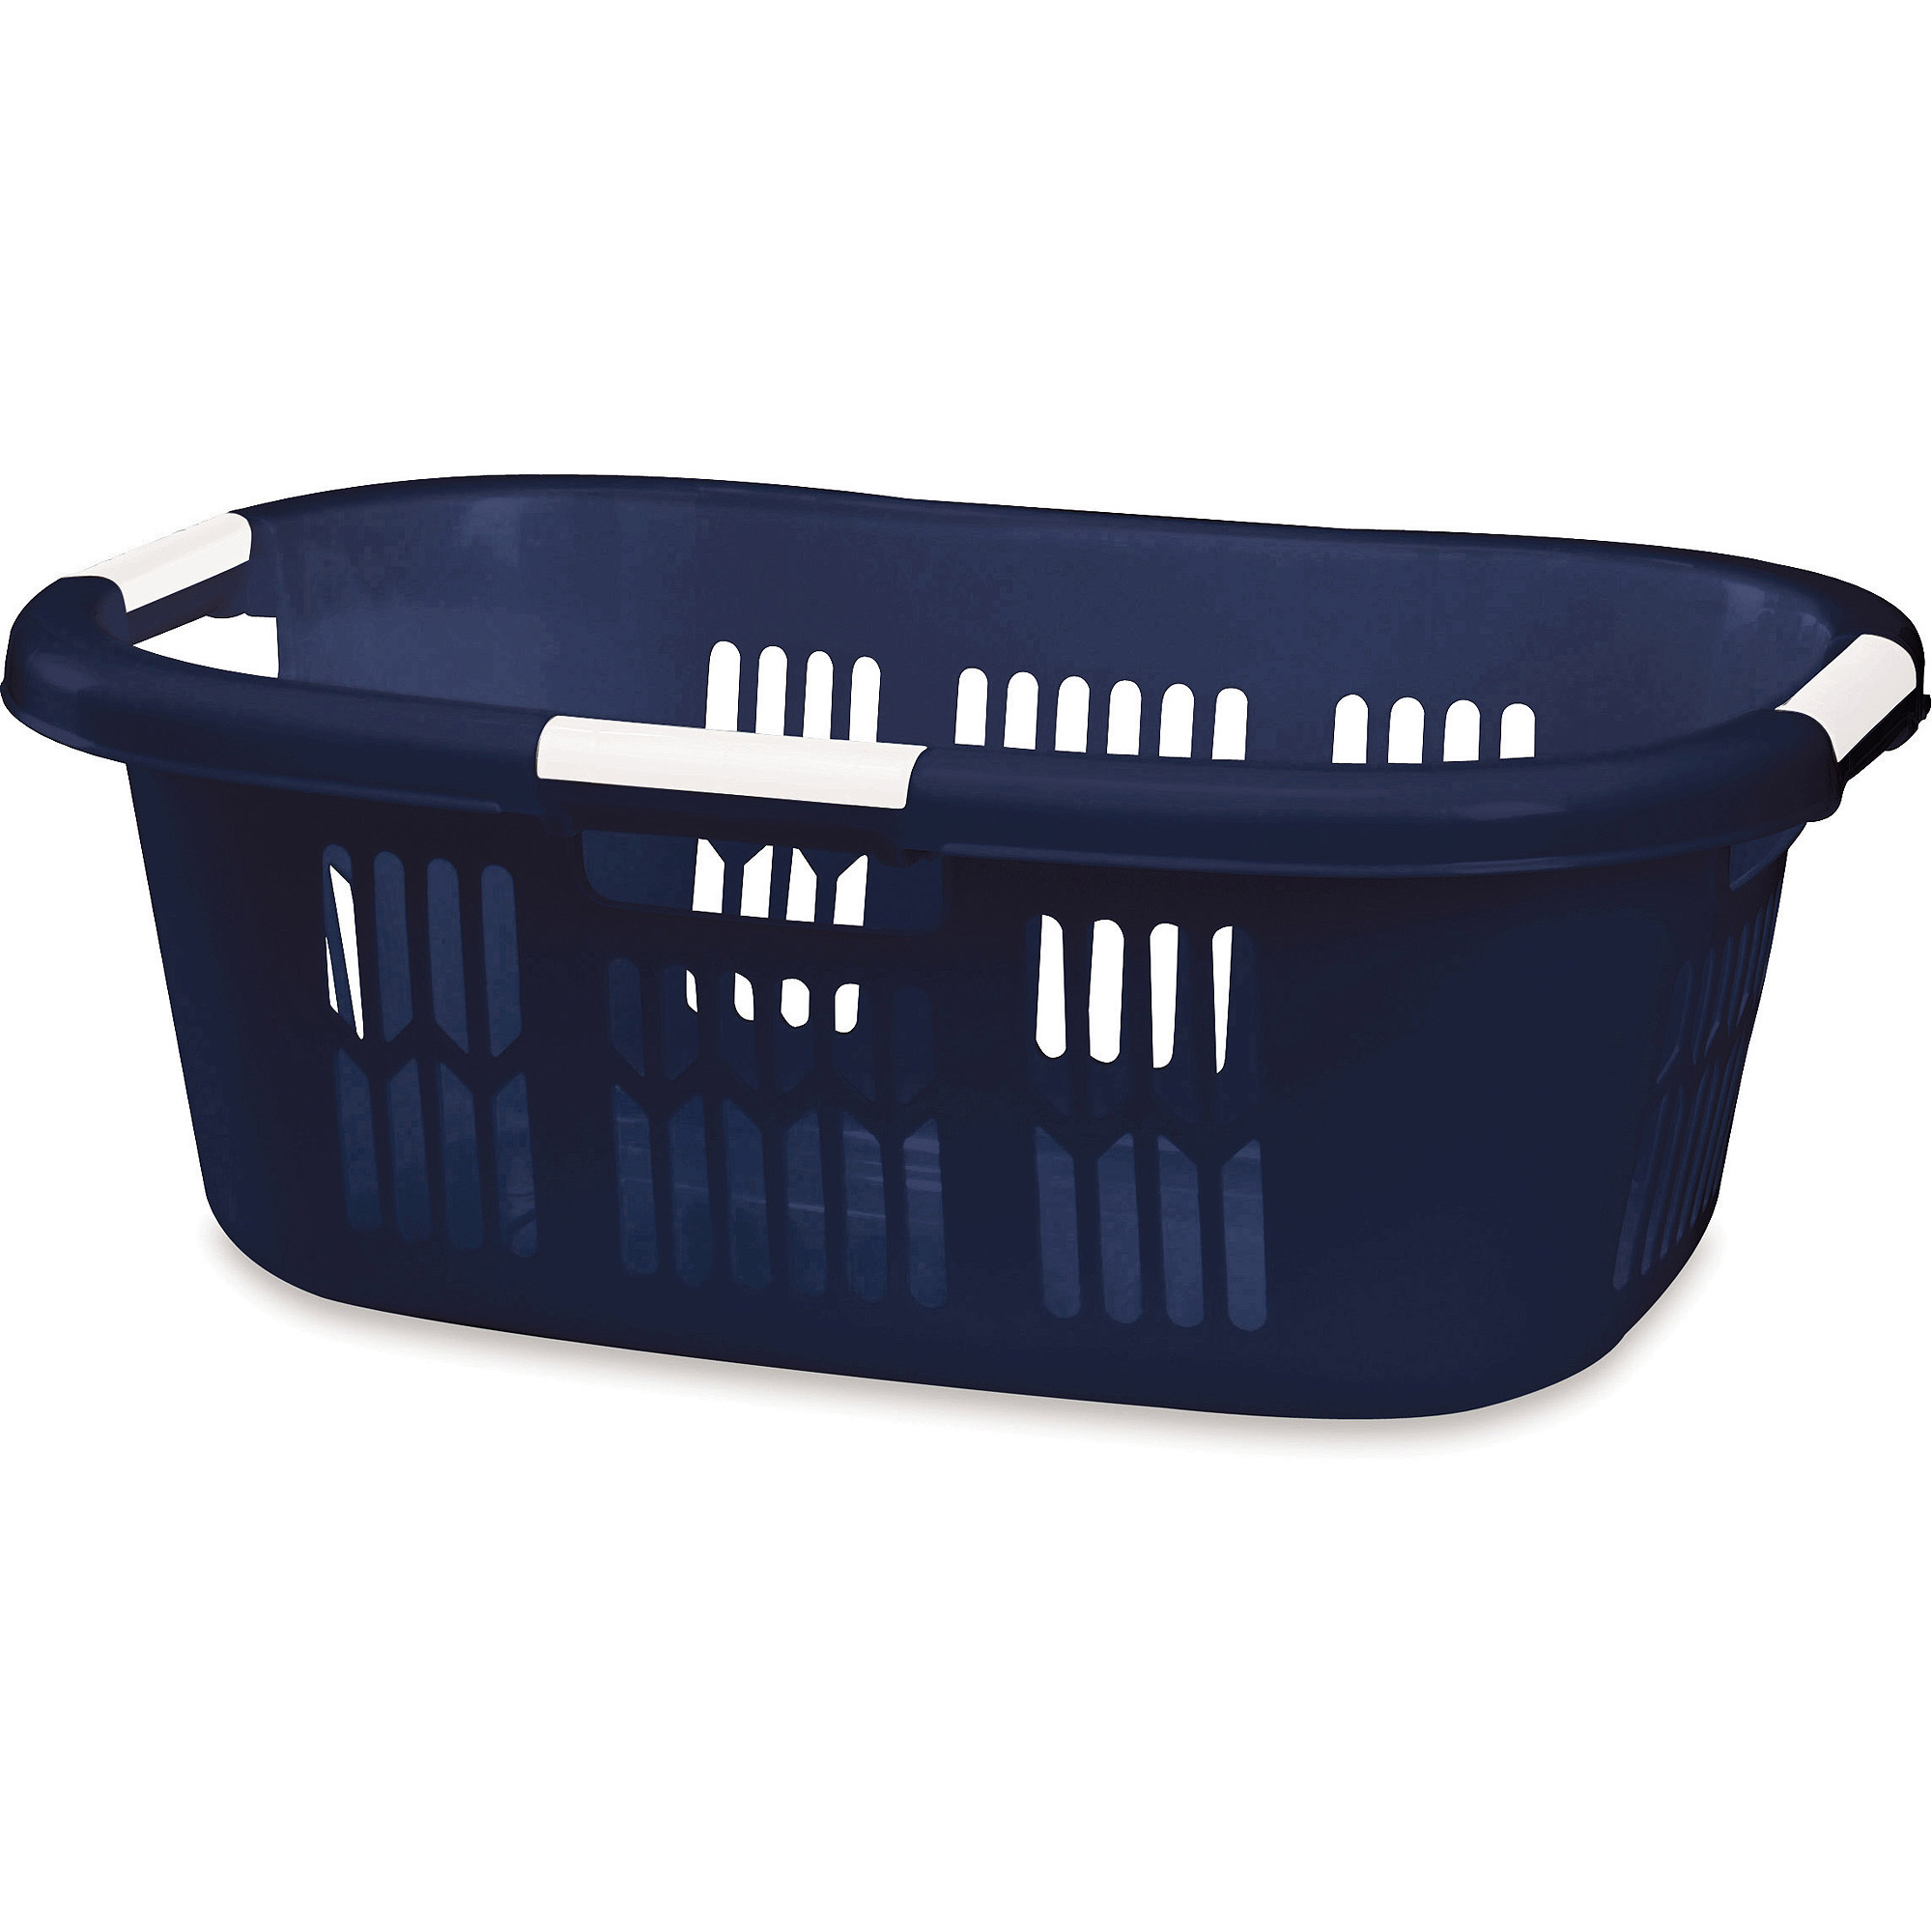 Rubbermaid 1.5 BU Hip-Hugger Laundry Basket